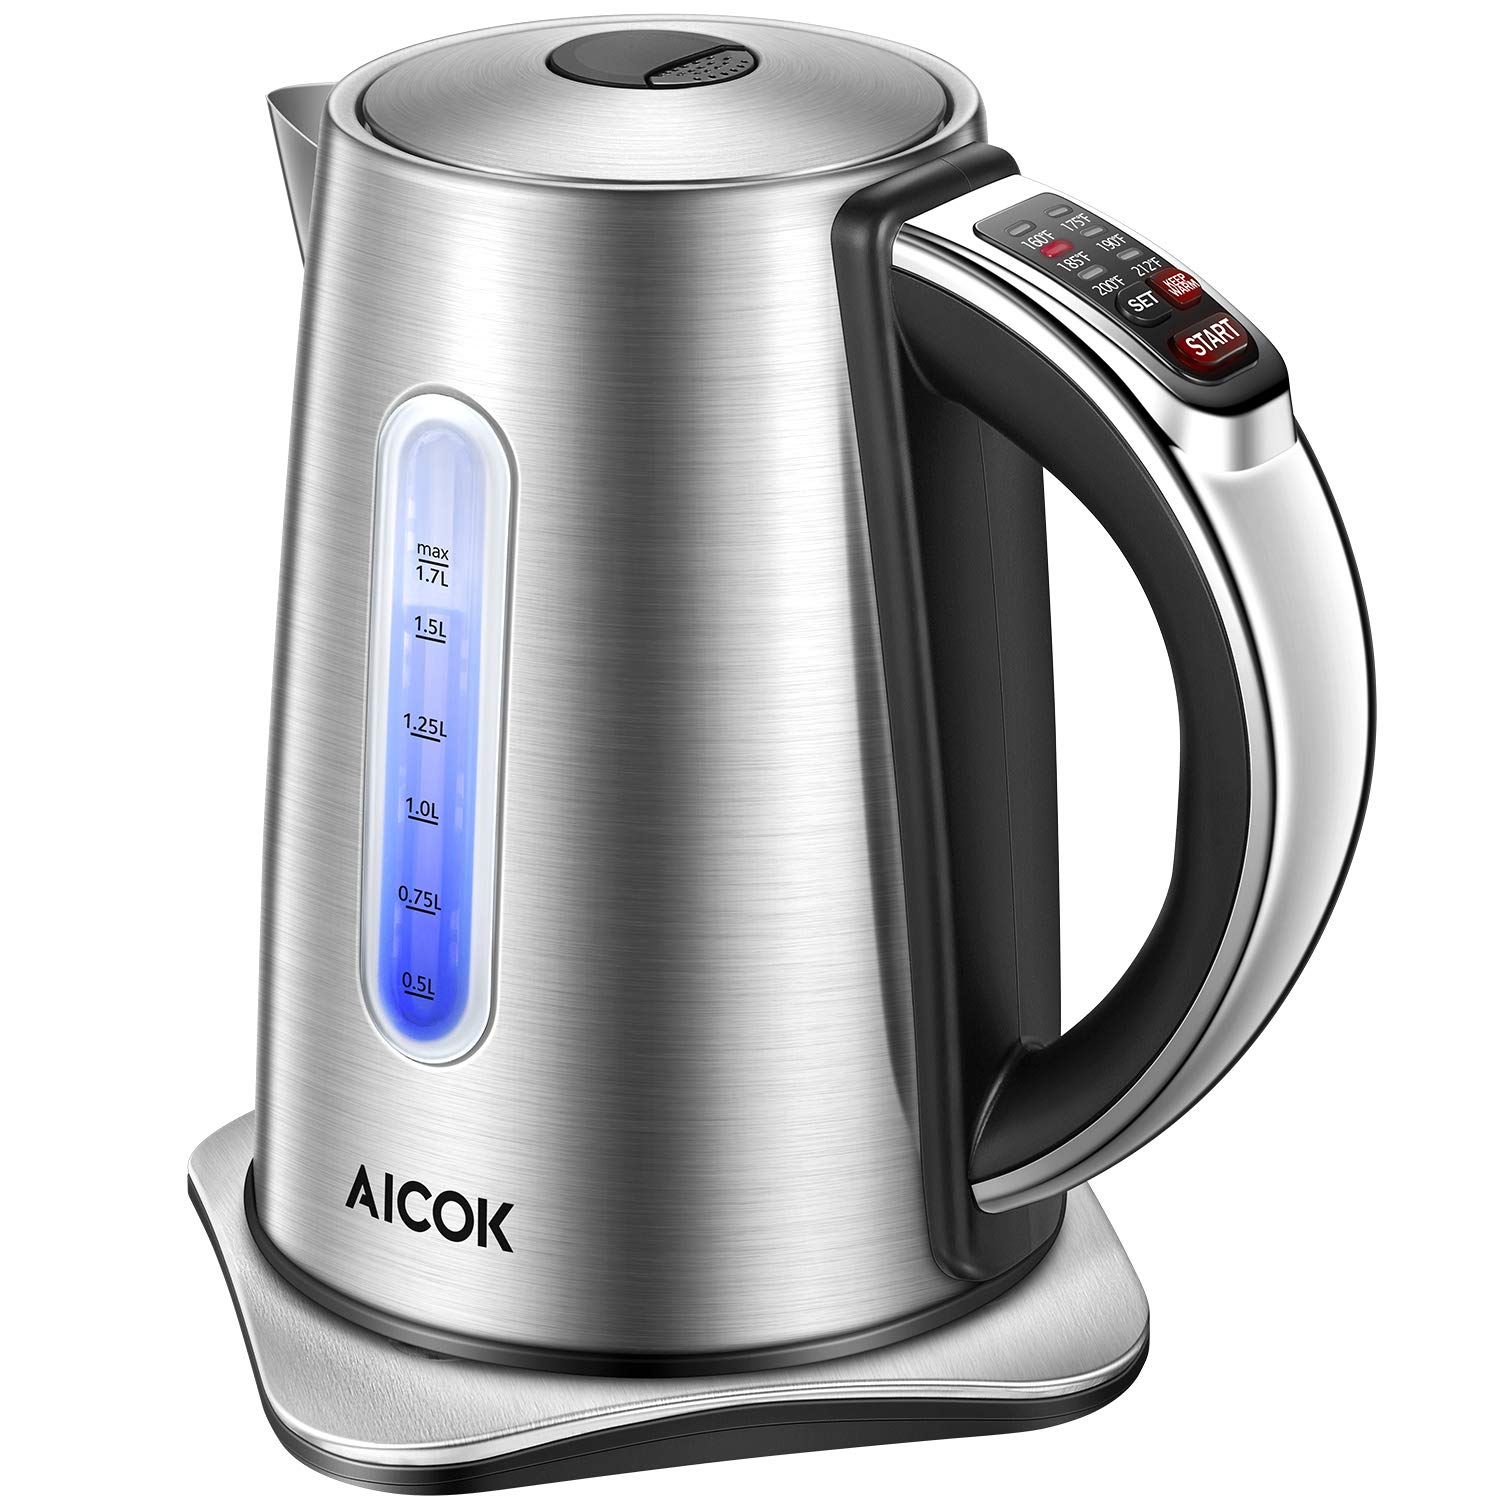 Electric kettle, Aicok Temperature Control kettle with 2 Hours Keep Warm Function, 1.7L Food Grade Stainless Steel Water Boiler, Double Water Indicator, BPA Free, 2200W, 2 Year Warranty by AICOK